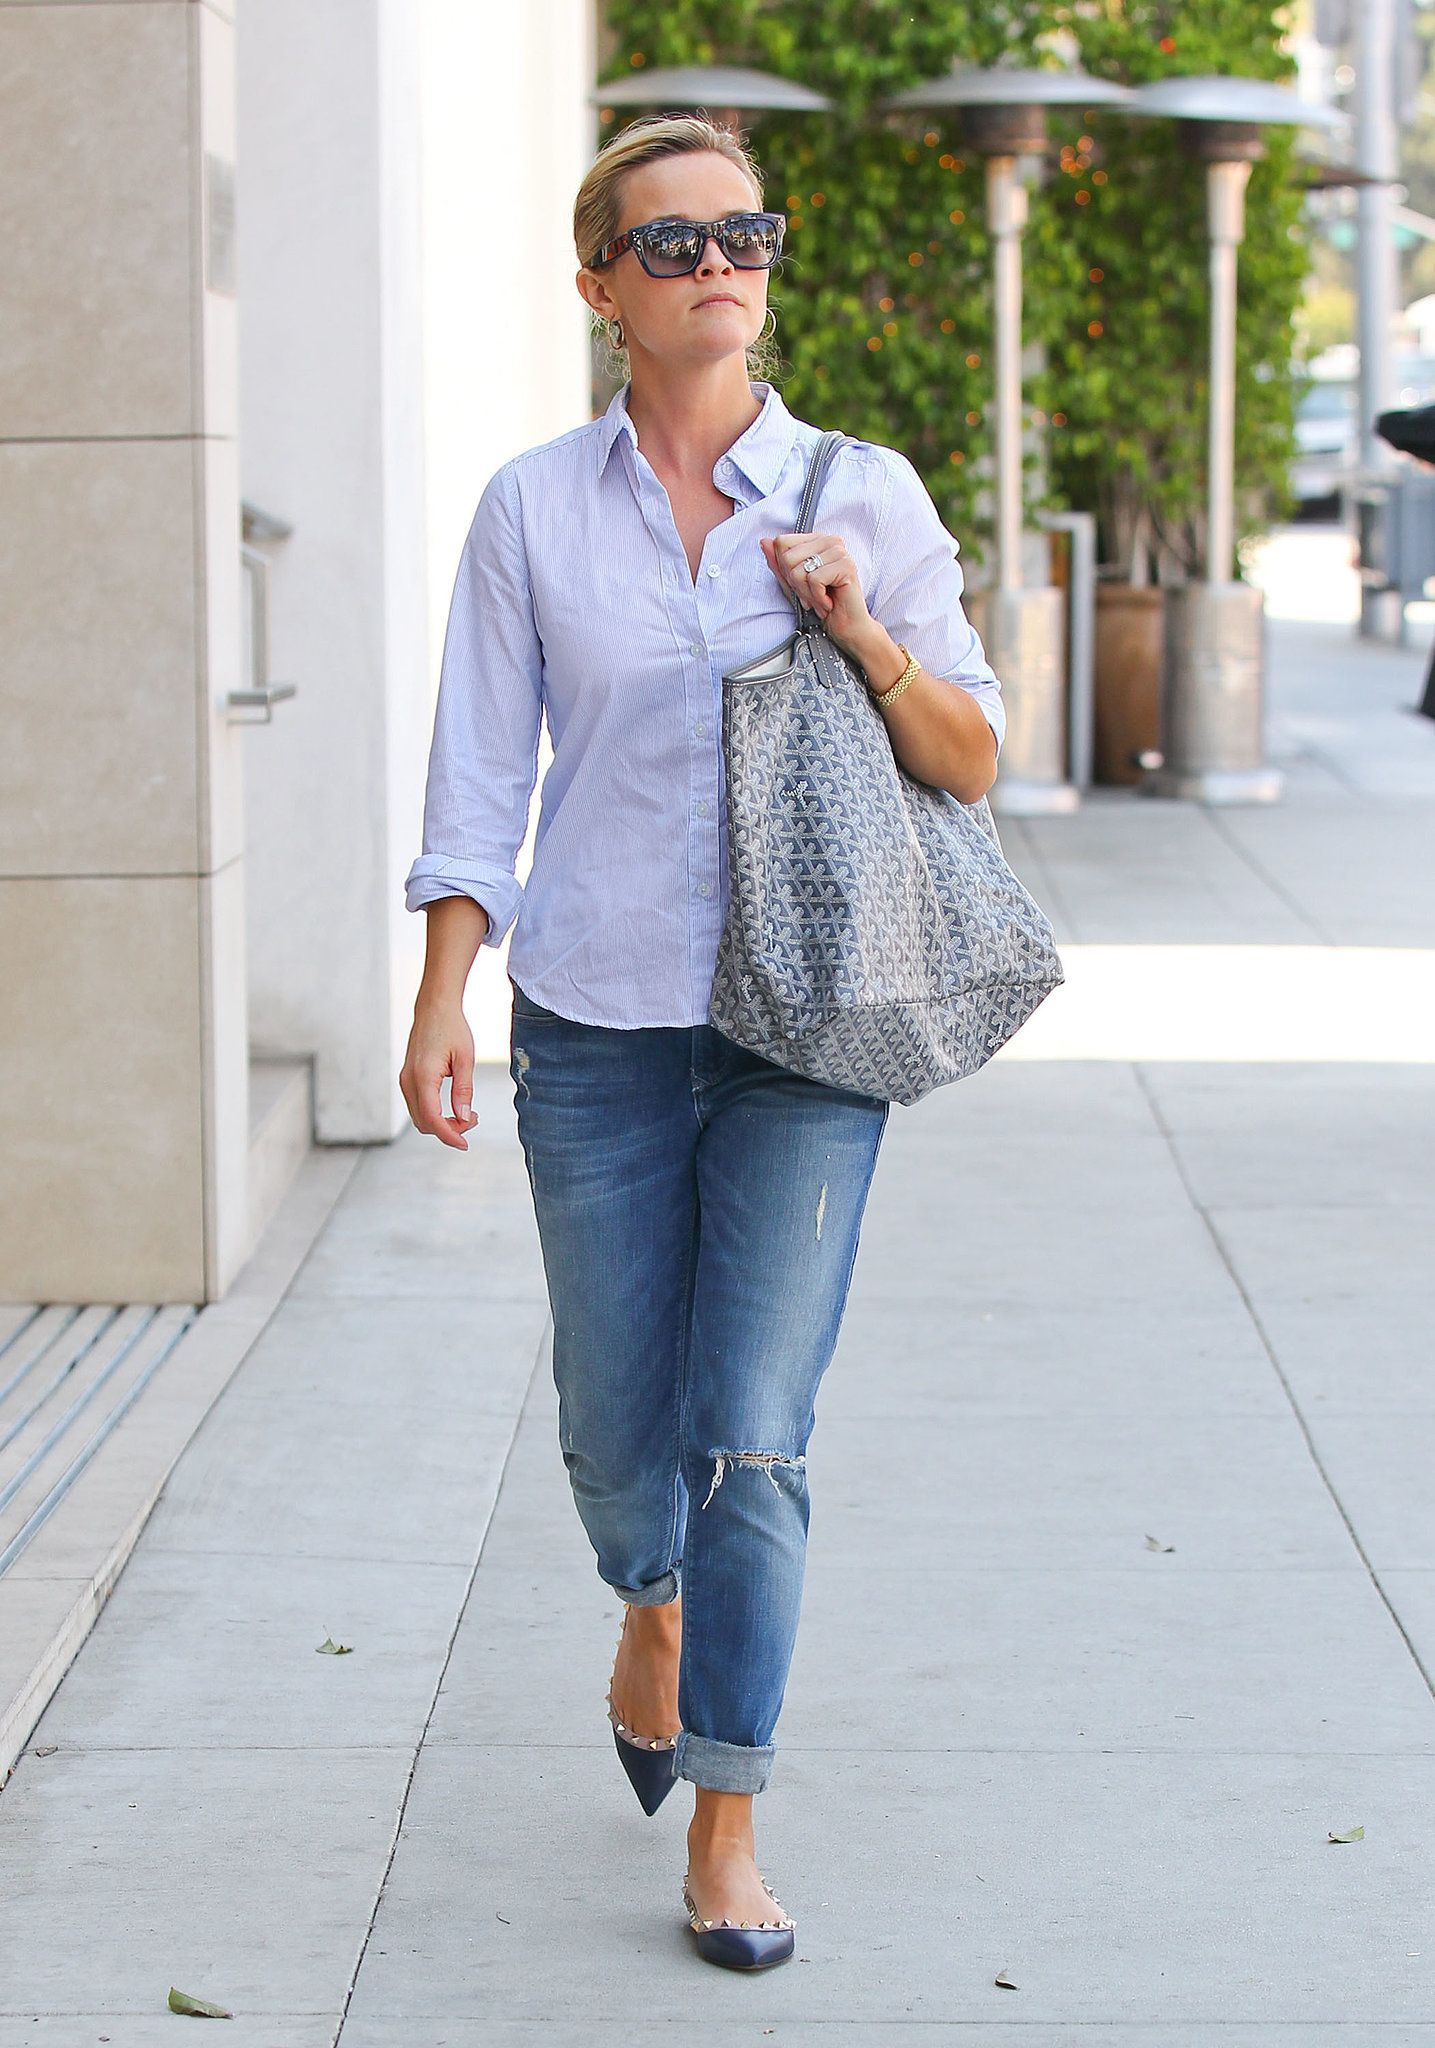 Dress up your boyfriend - The Quickest Way To Dress Up Your Boyfriend Jeans With Studded Statement Flats La Reese Witherspoon Keep The Overall Effect Work Ready By Tucking In